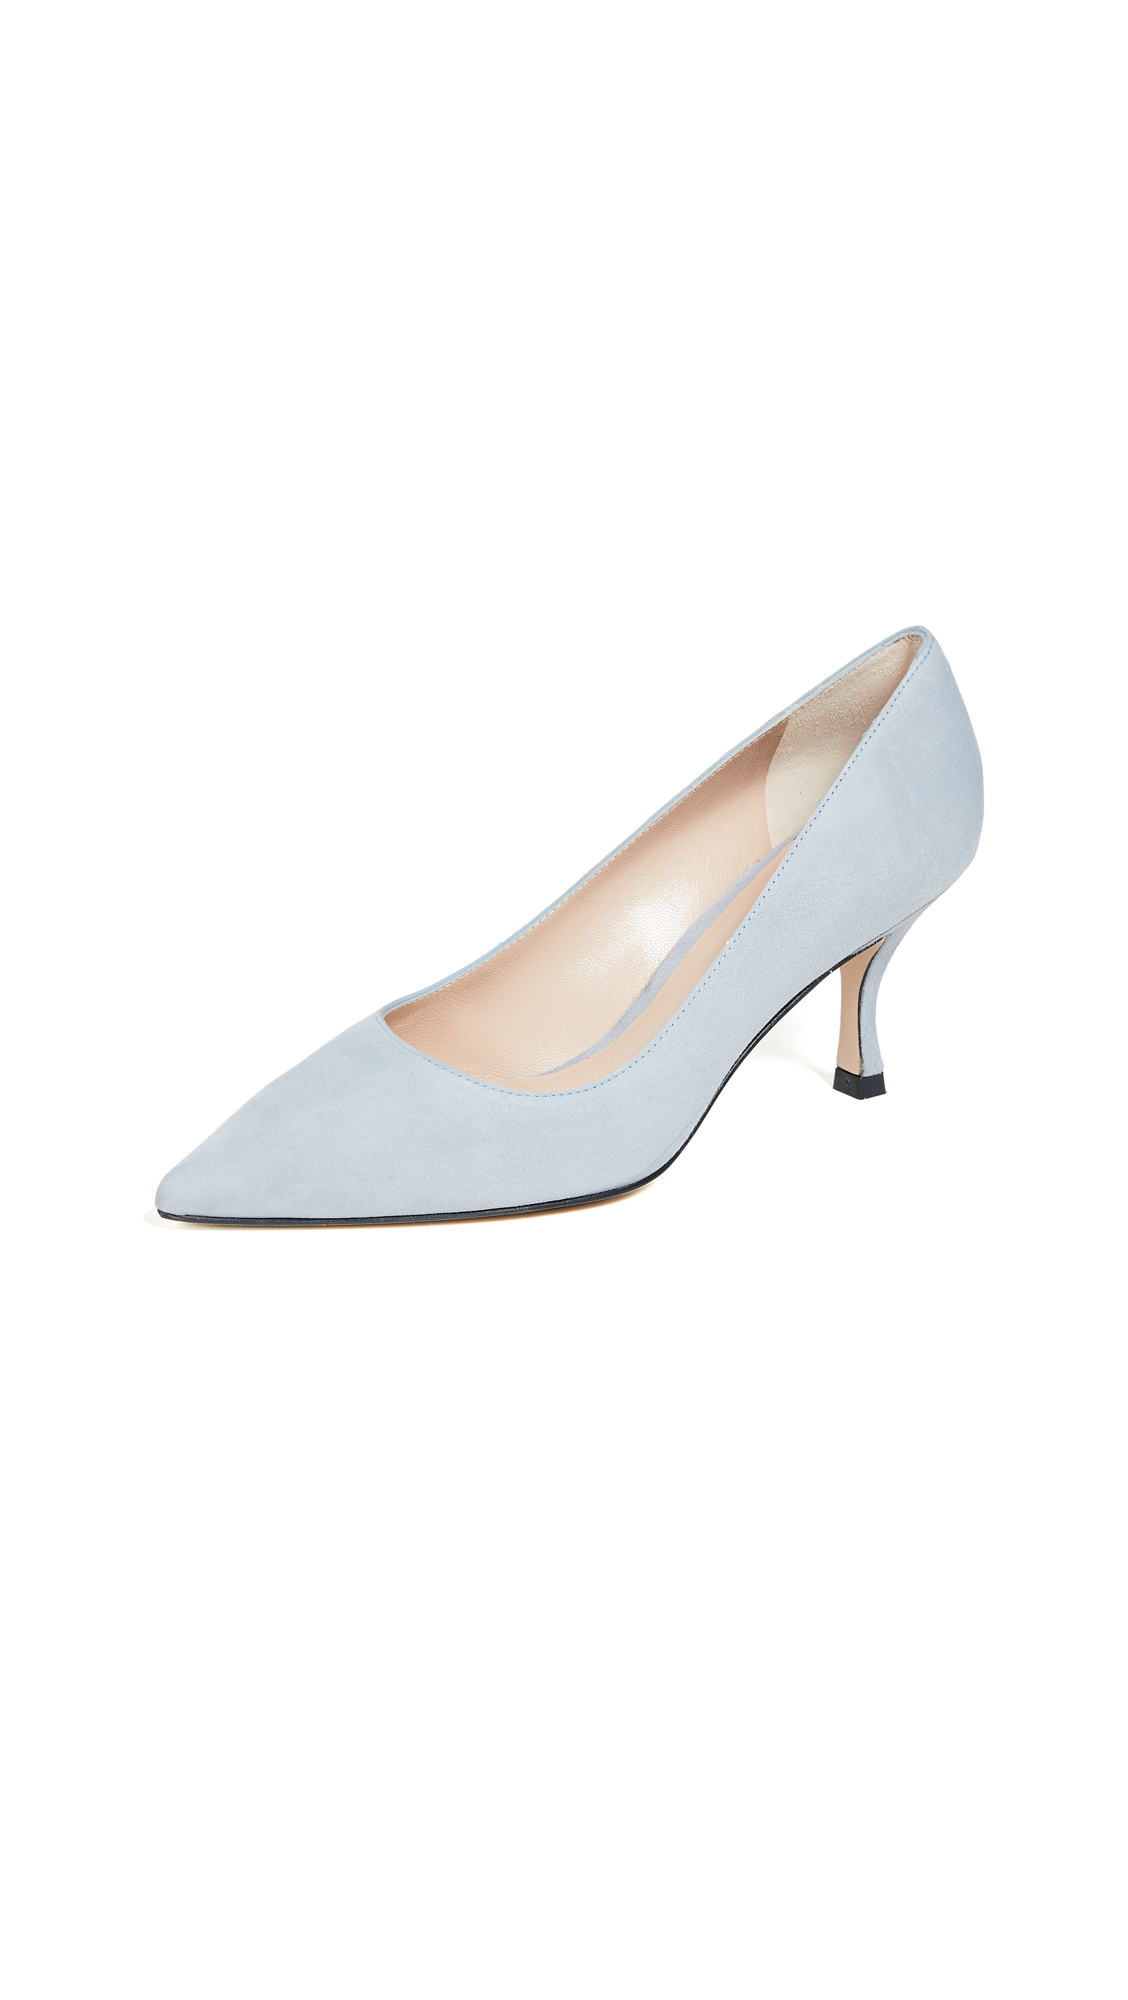 Photo of Stuart Weitzman Tippi 70mm Pumps online shoes sales